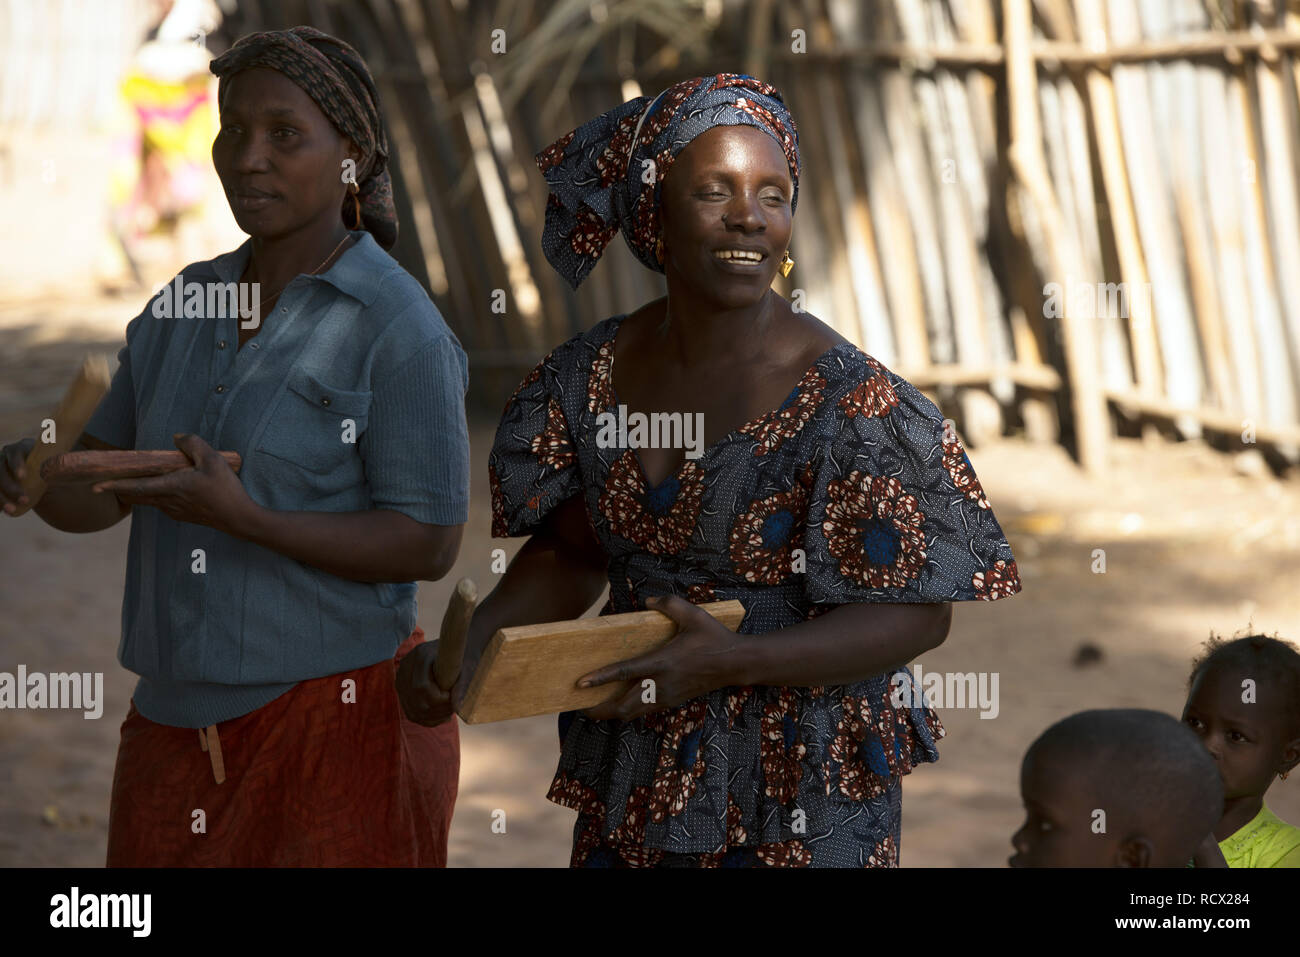 Indigenous Jola tribe women play traditional musical instruments during a chanting ritual in the village of Berending, The Gambia, West Africa. - Stock Image